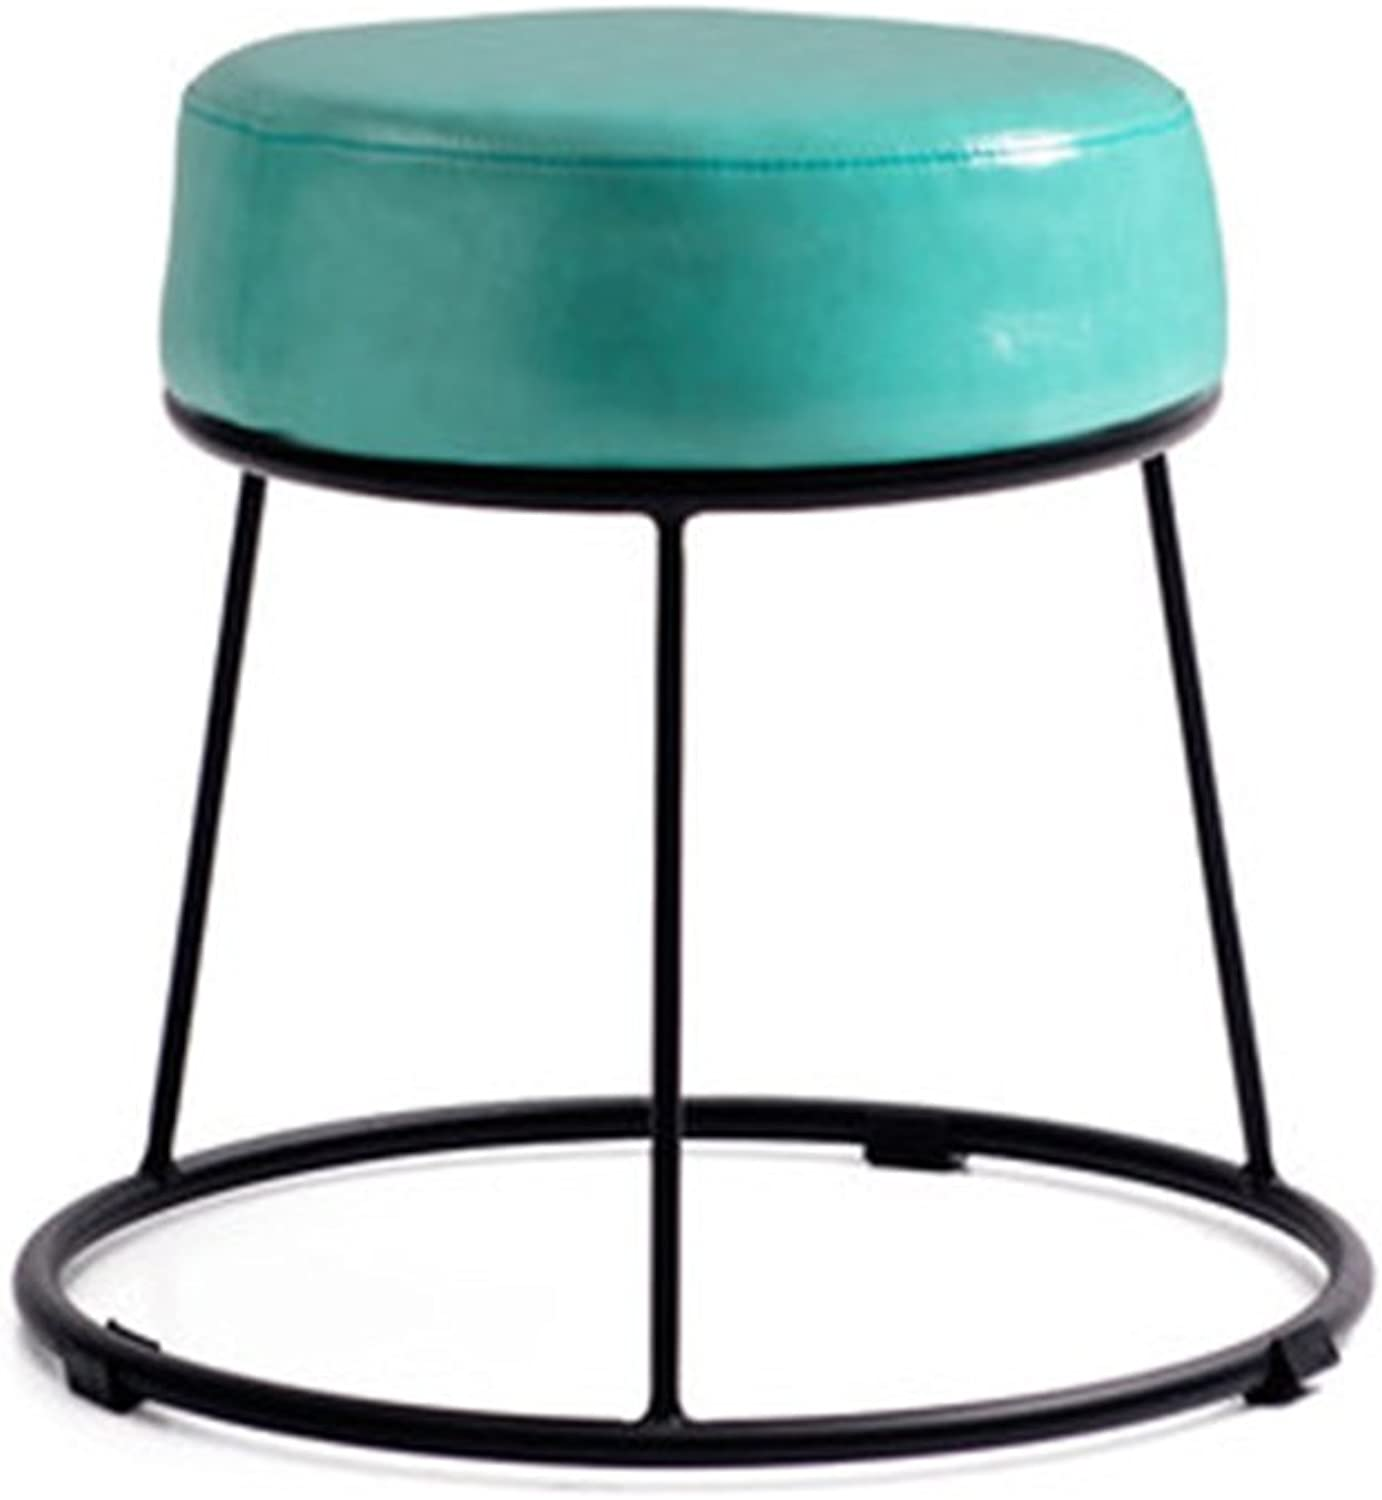 Simple wrought iron stool Home bar chair coffee chair Retro bar chair small round stool ( color   bluee , Size   38.536.5cm )